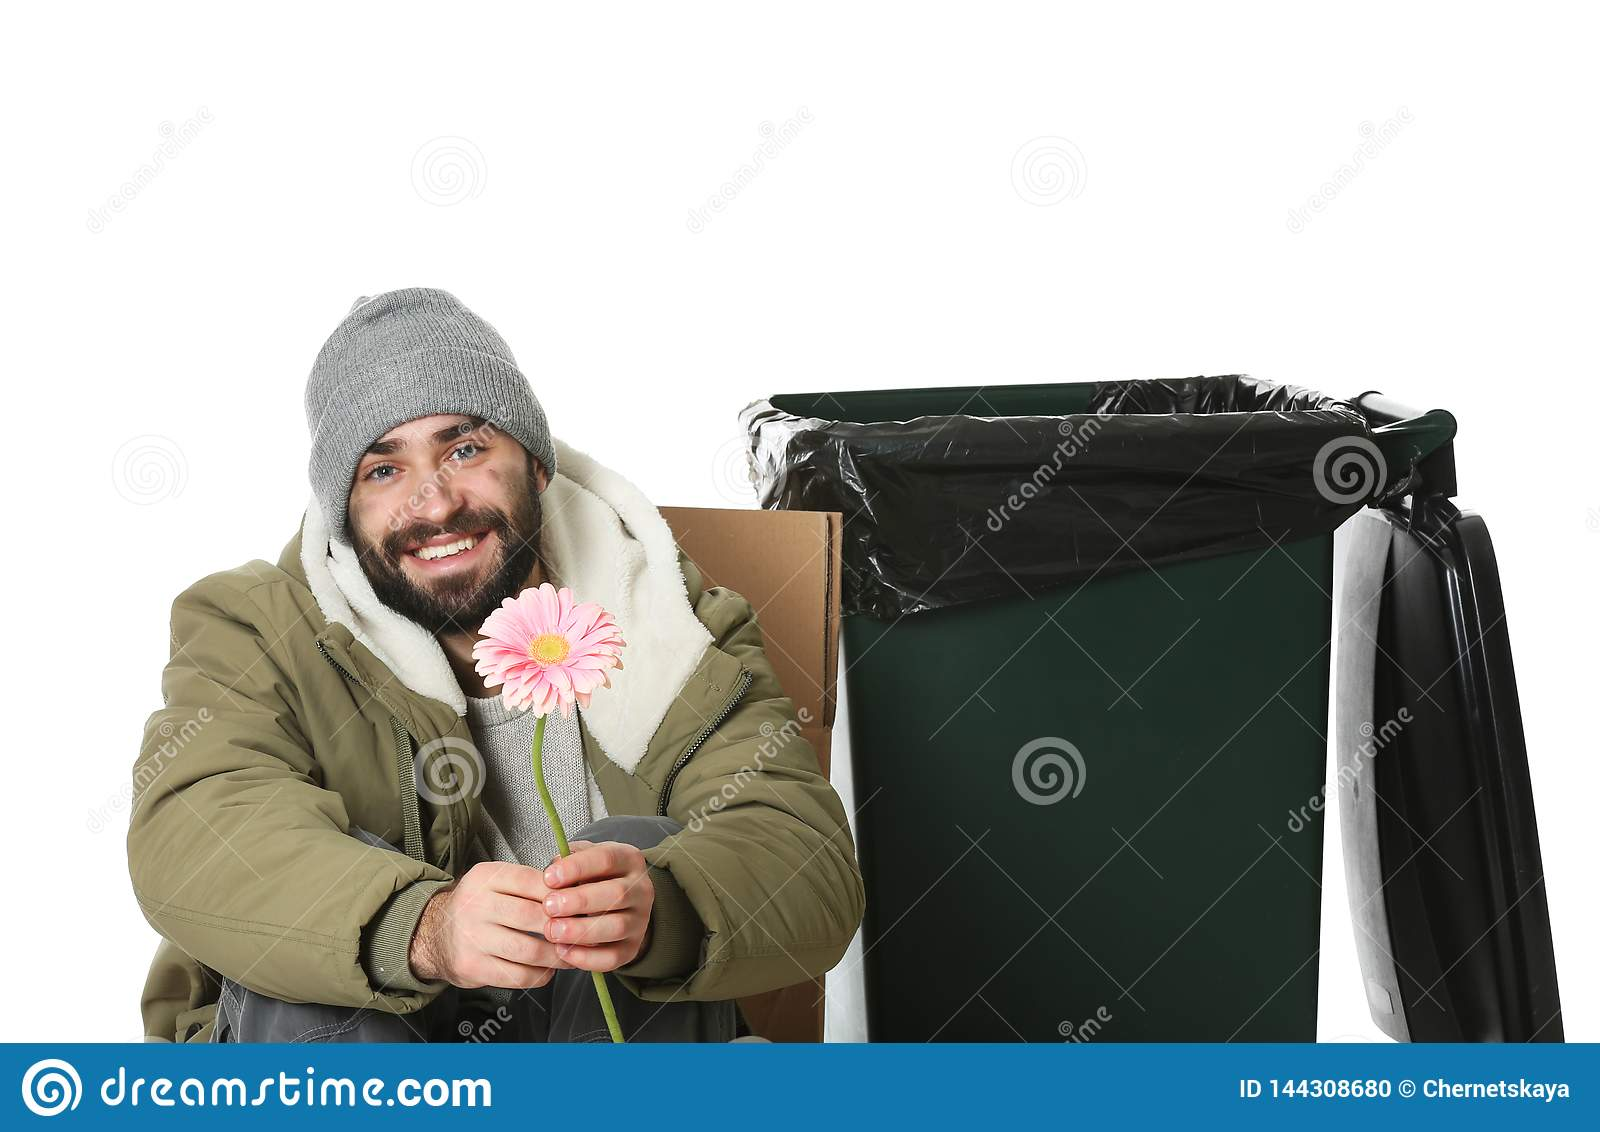 Image result for homeless man""